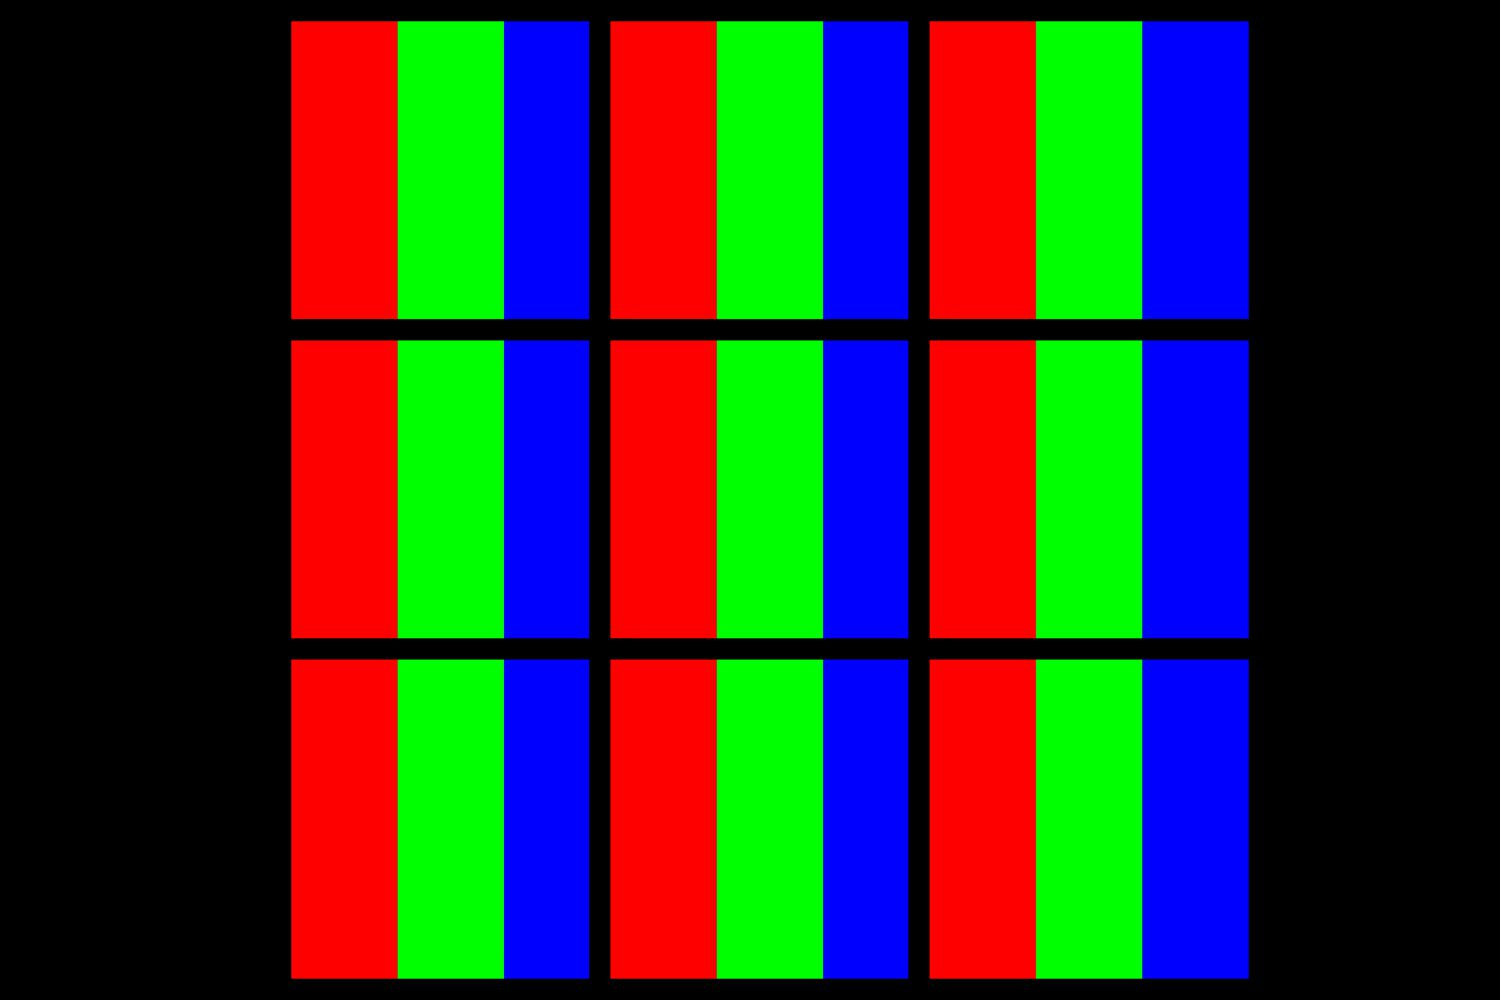 Illustration of What LCD TV Pixels Look Like